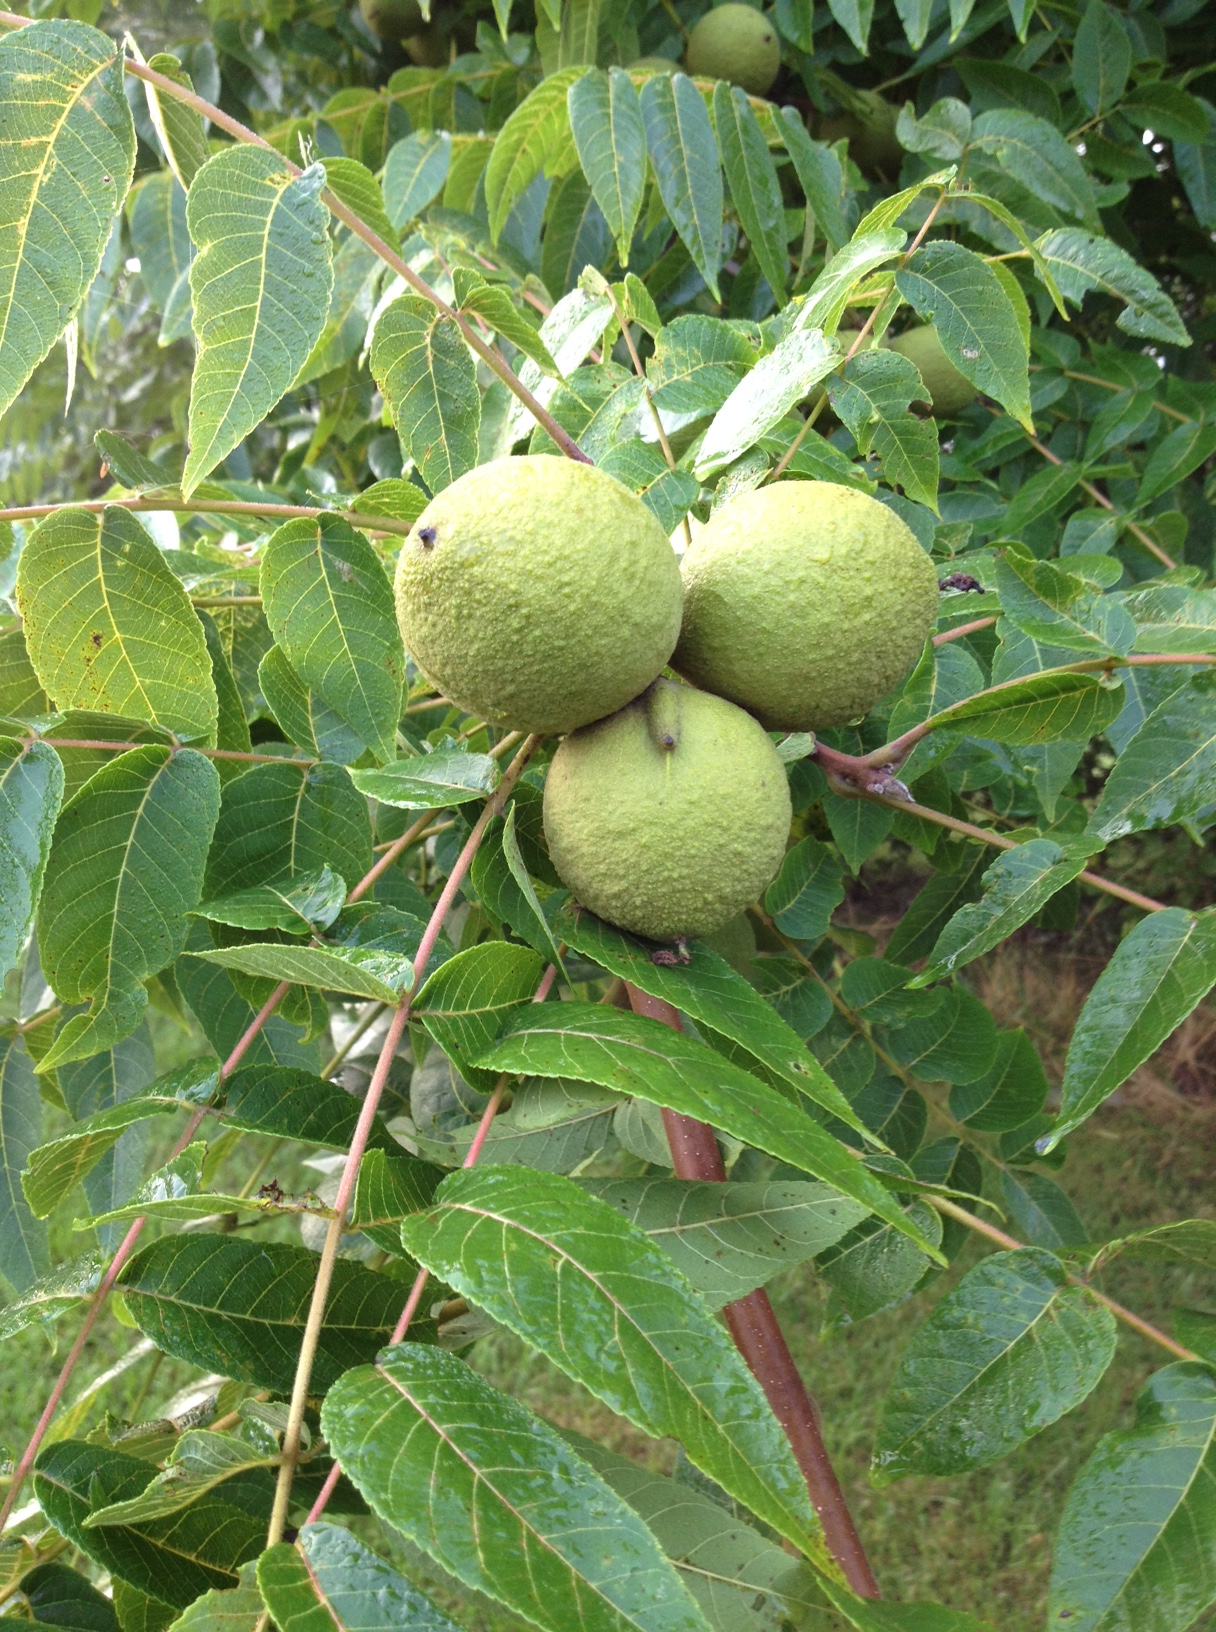 Young black walnut tree pictures How to Identify the Common Black Walnut Tree - ThoughtCo